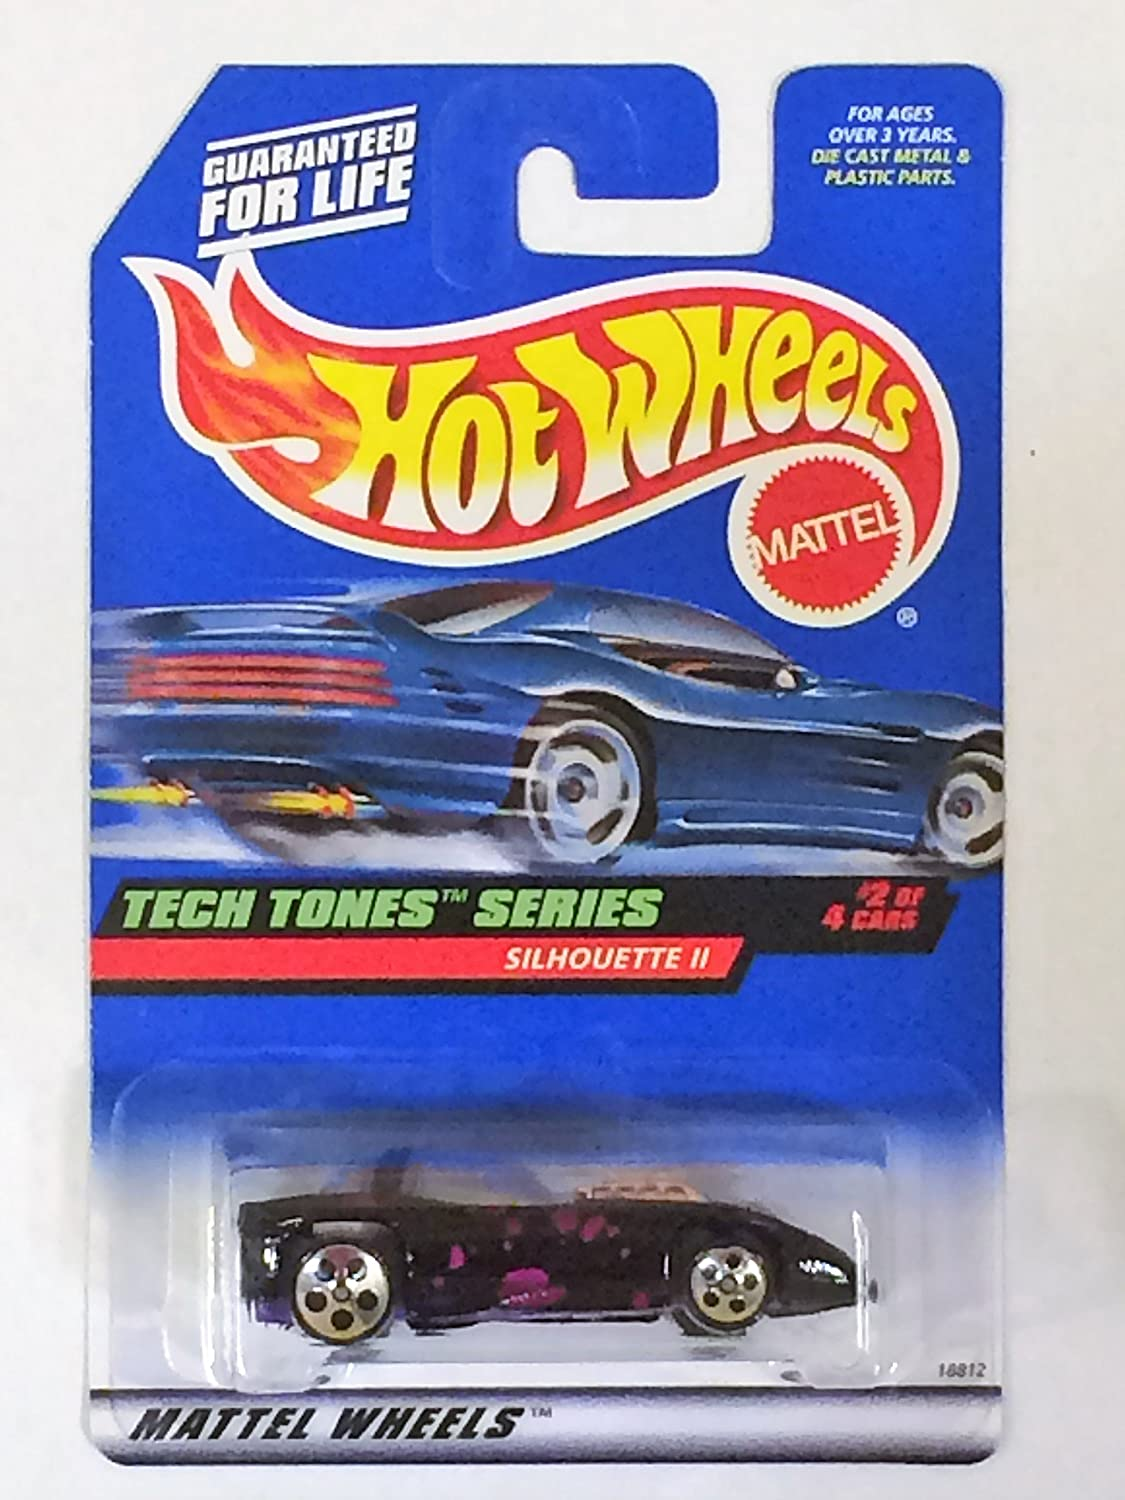 Hot Wheels - 1998 - Tech Tones Series - Silhouette II - Black & Purple - #2 of 4 - Collector #746 - Limited Edition - Collectible 1:64 Scale